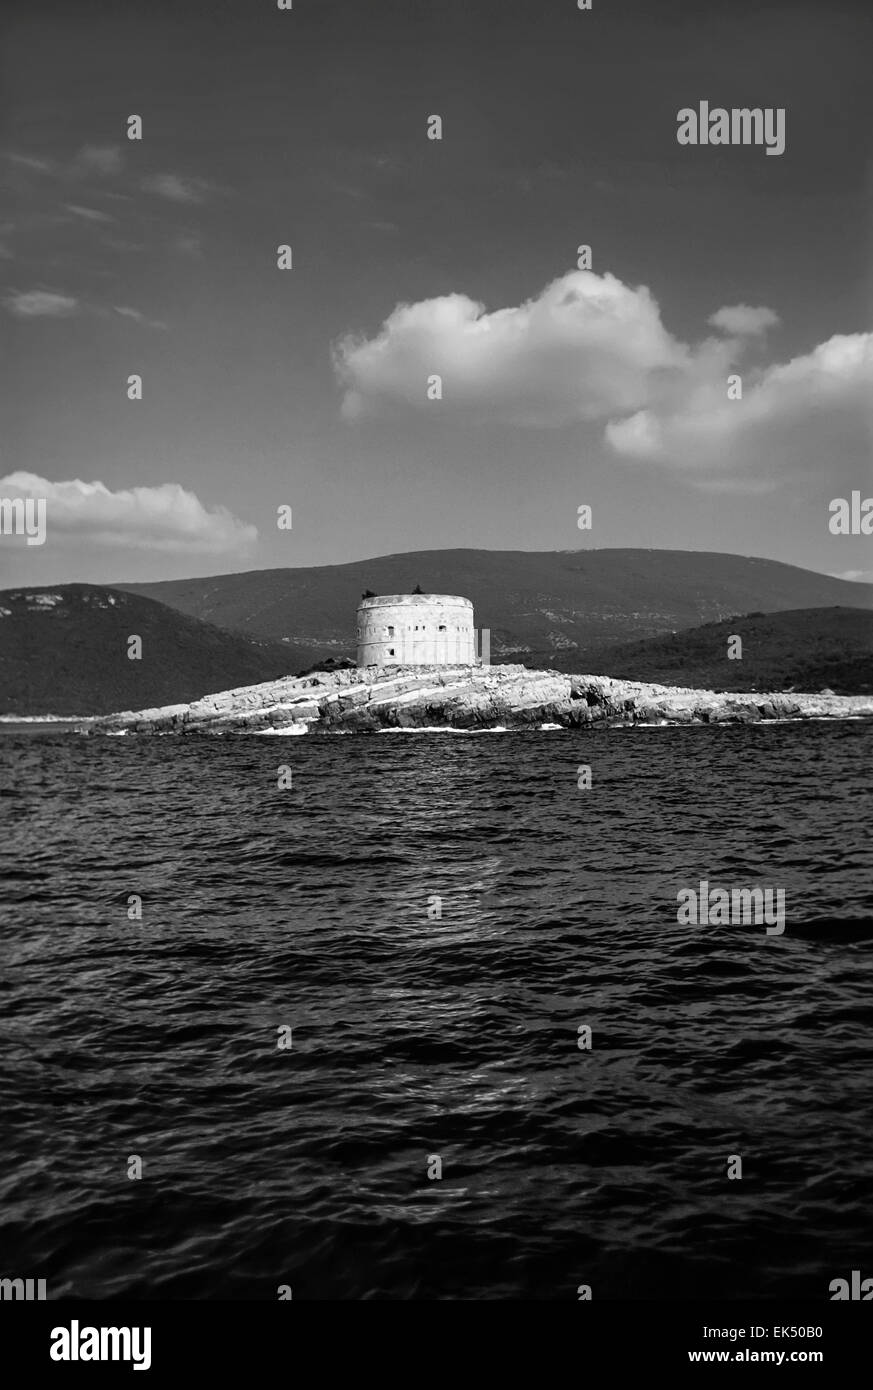 Montenegro, Adriatic Sea, view of the coastline and an old Saracin tower - FILM SCAN - Stock Image